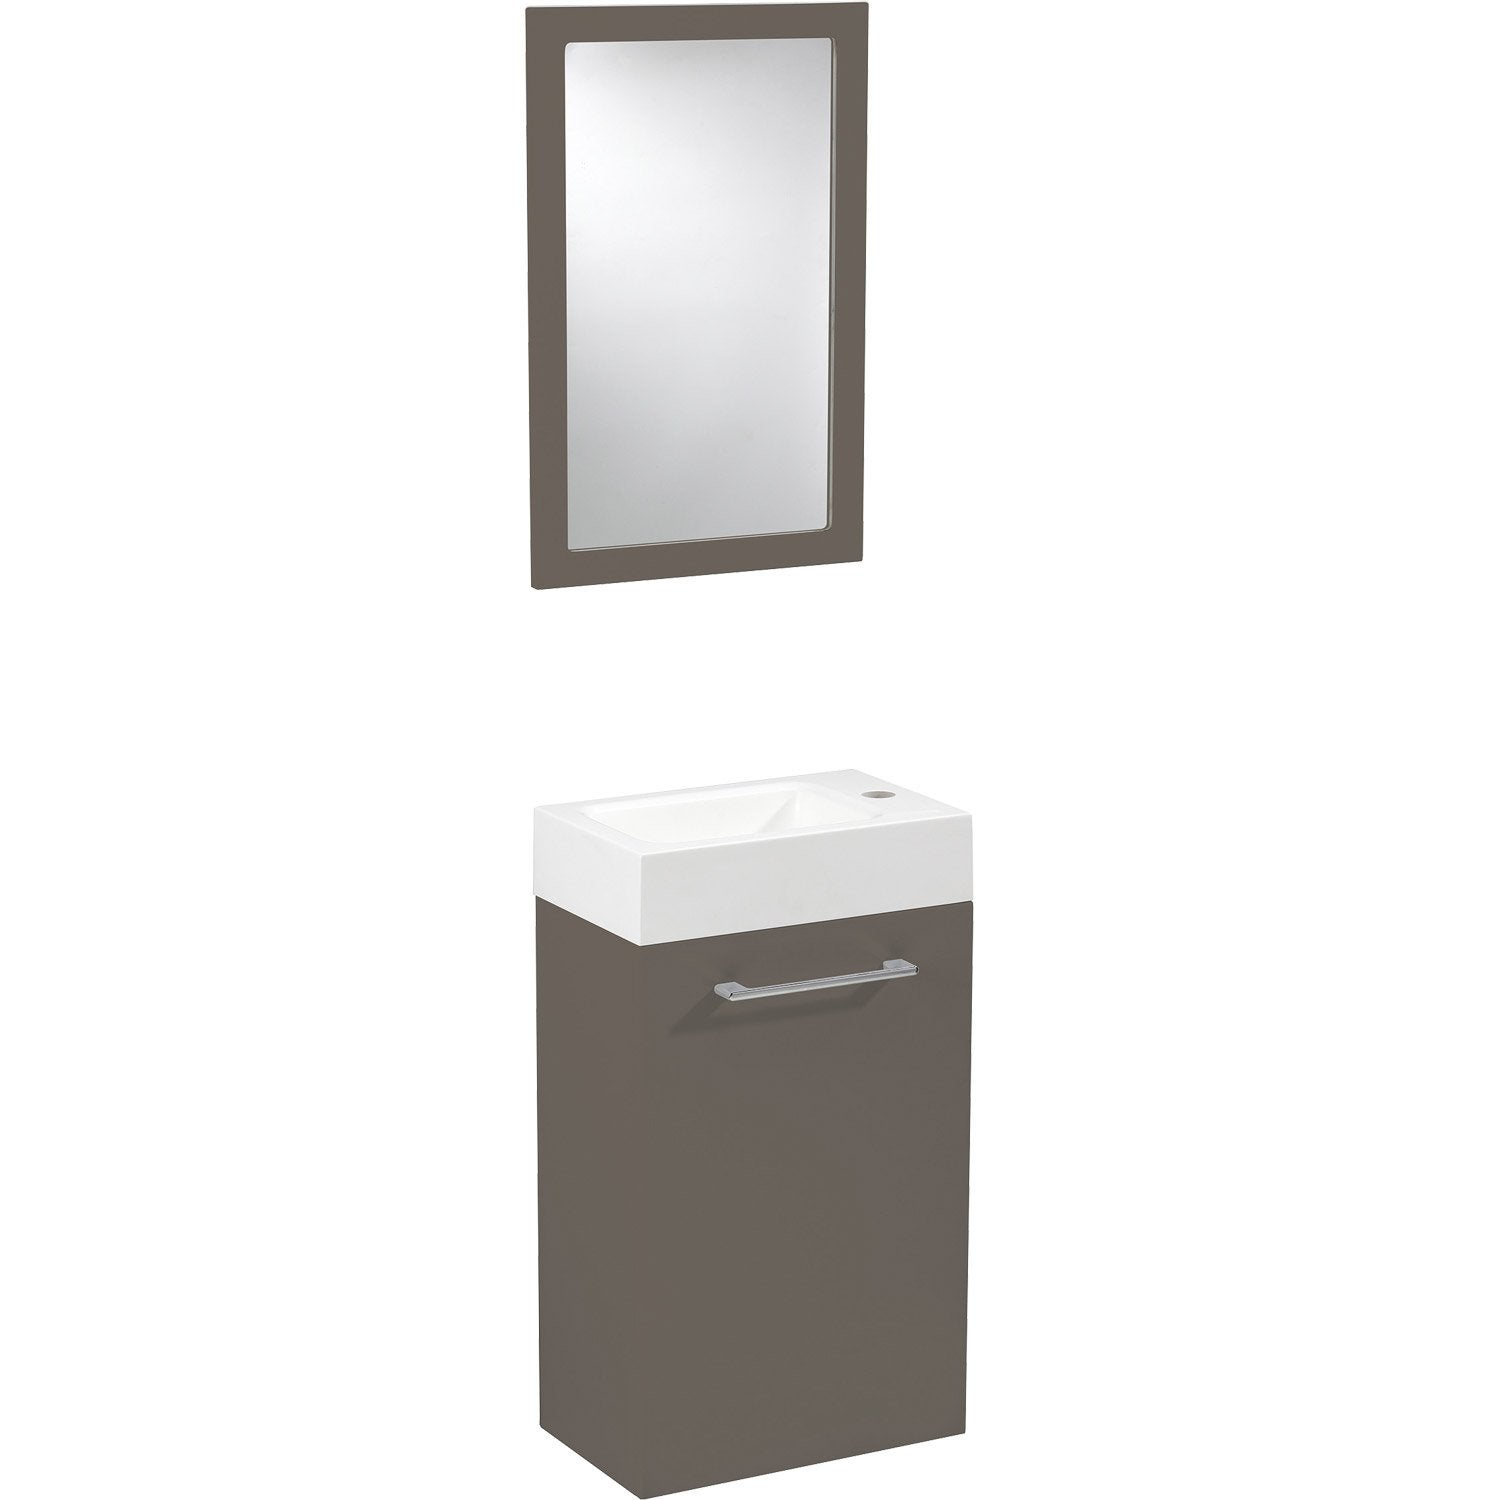 Leroy Merlin Lave Main Wc Maison Design